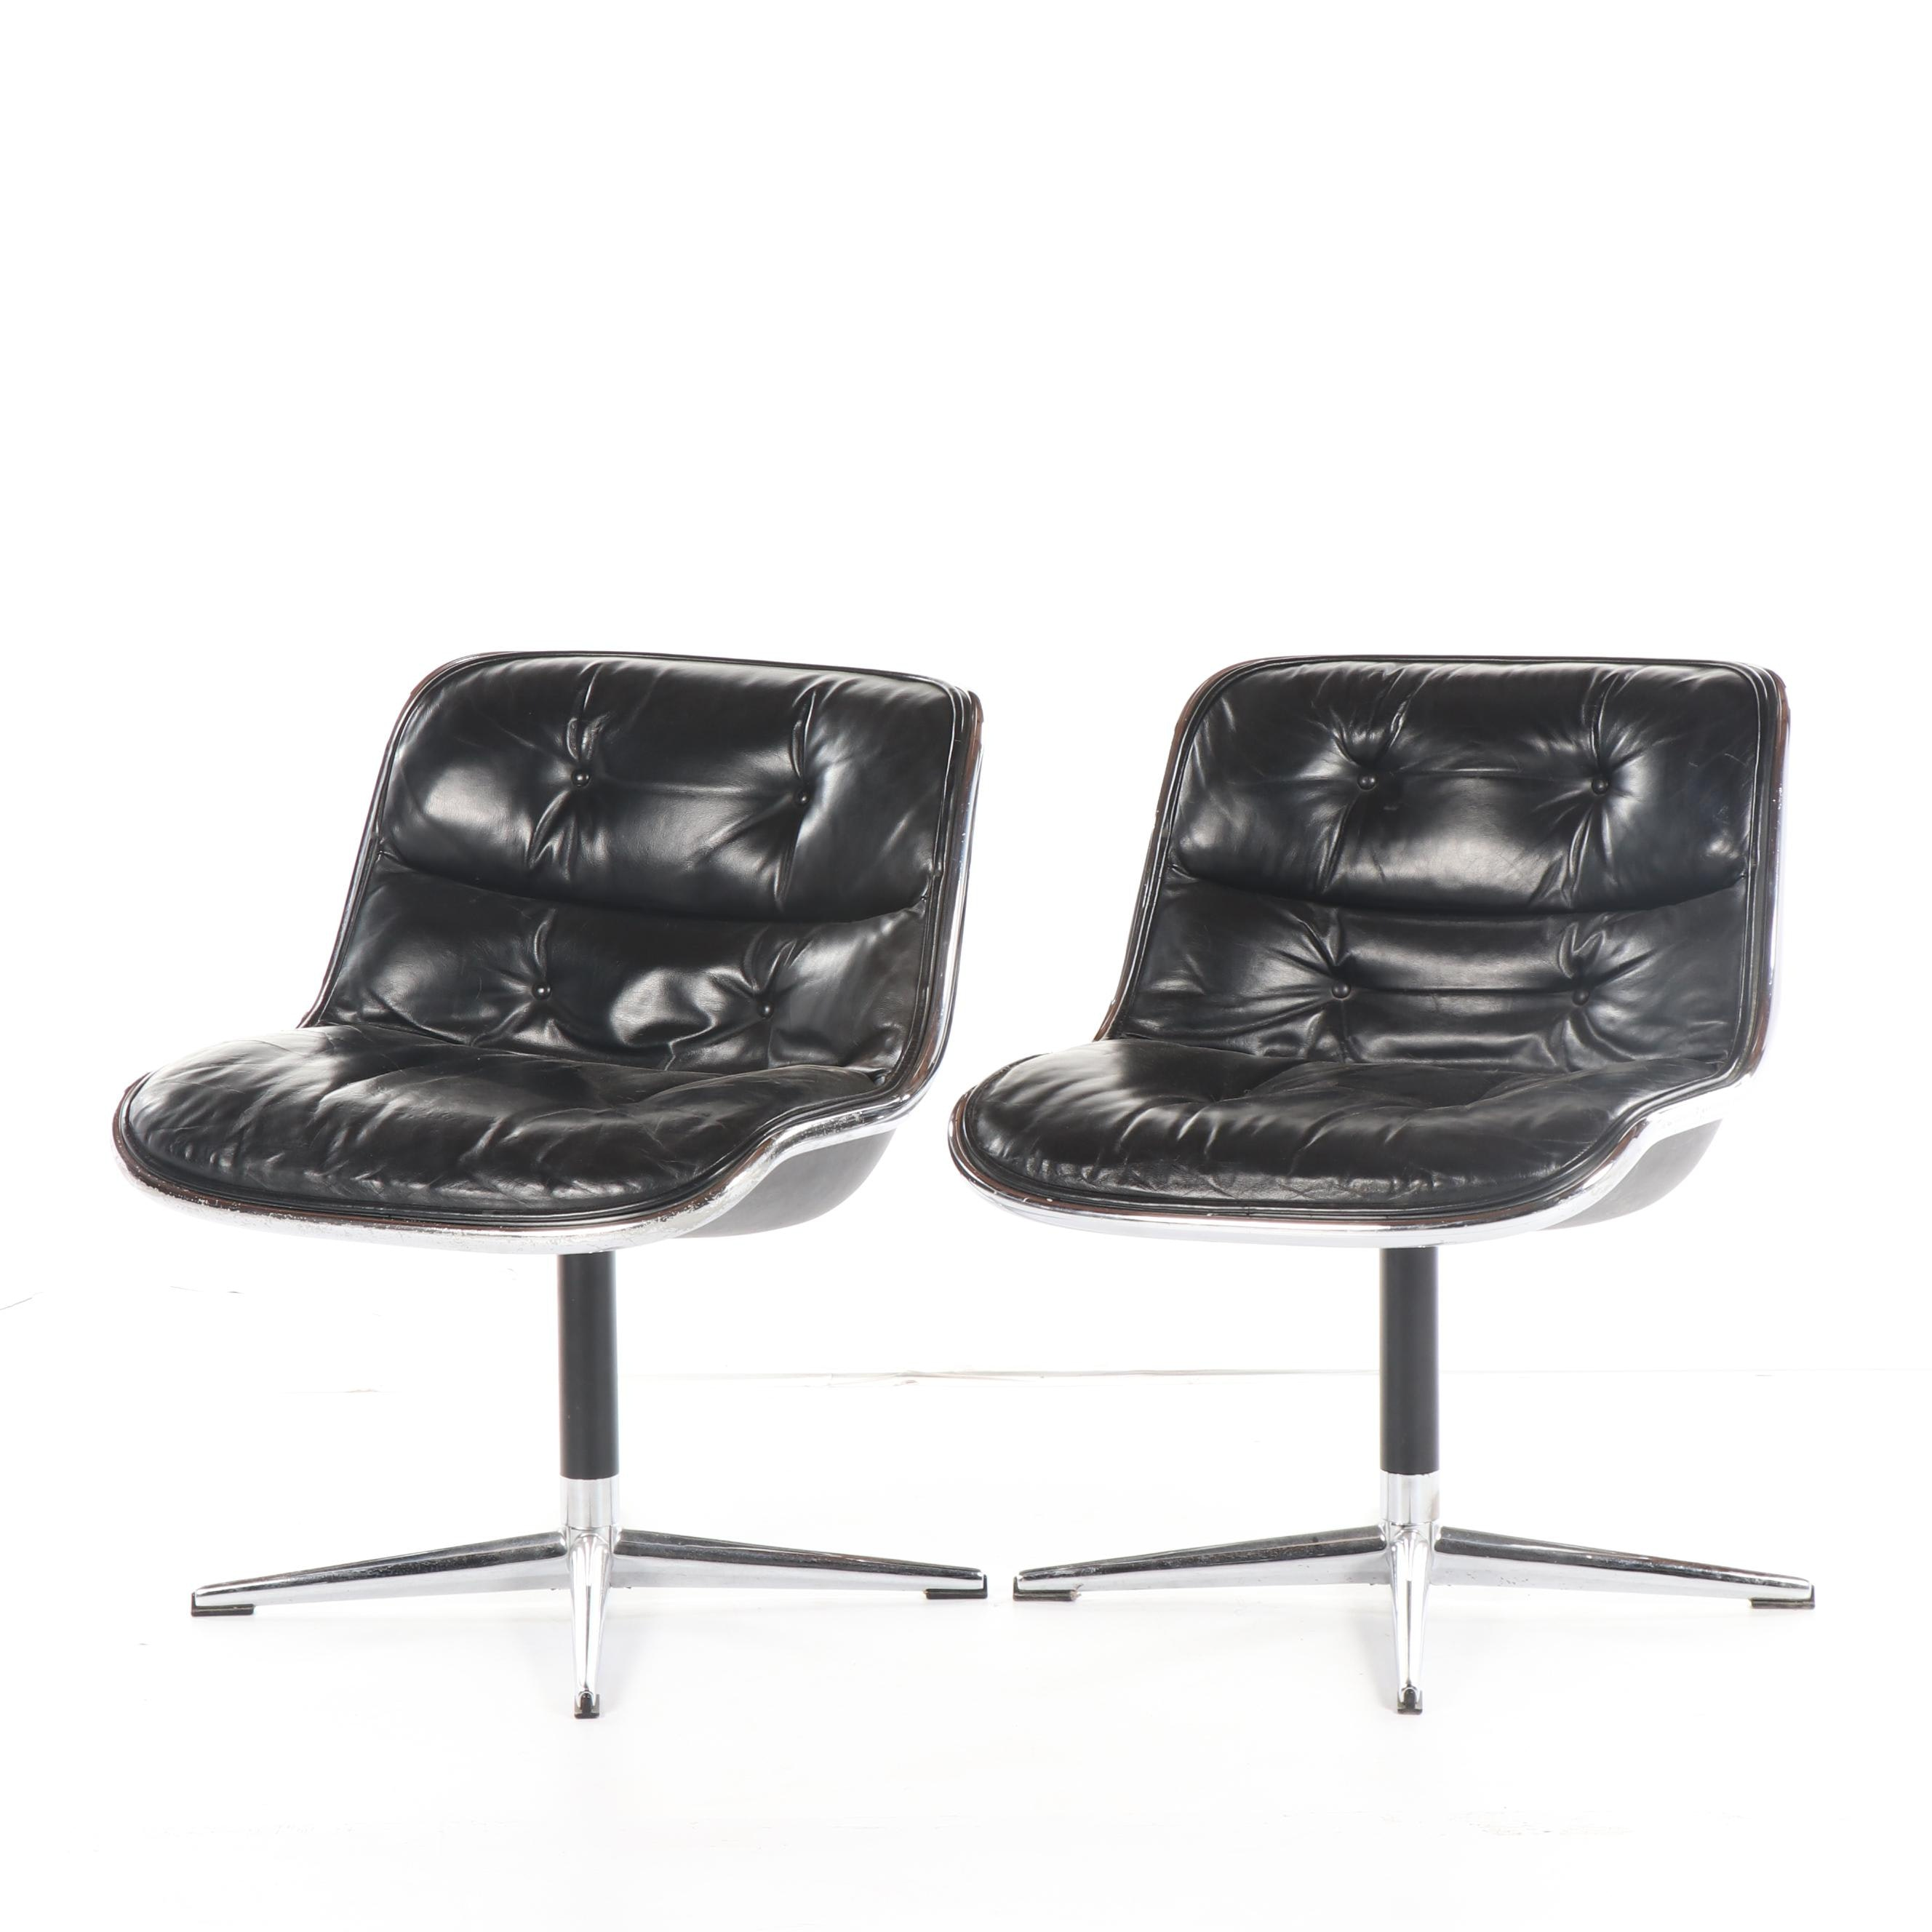 "Leather ""Pollock Executive Chair"" Pair by Knoll International, Circa 1970s"